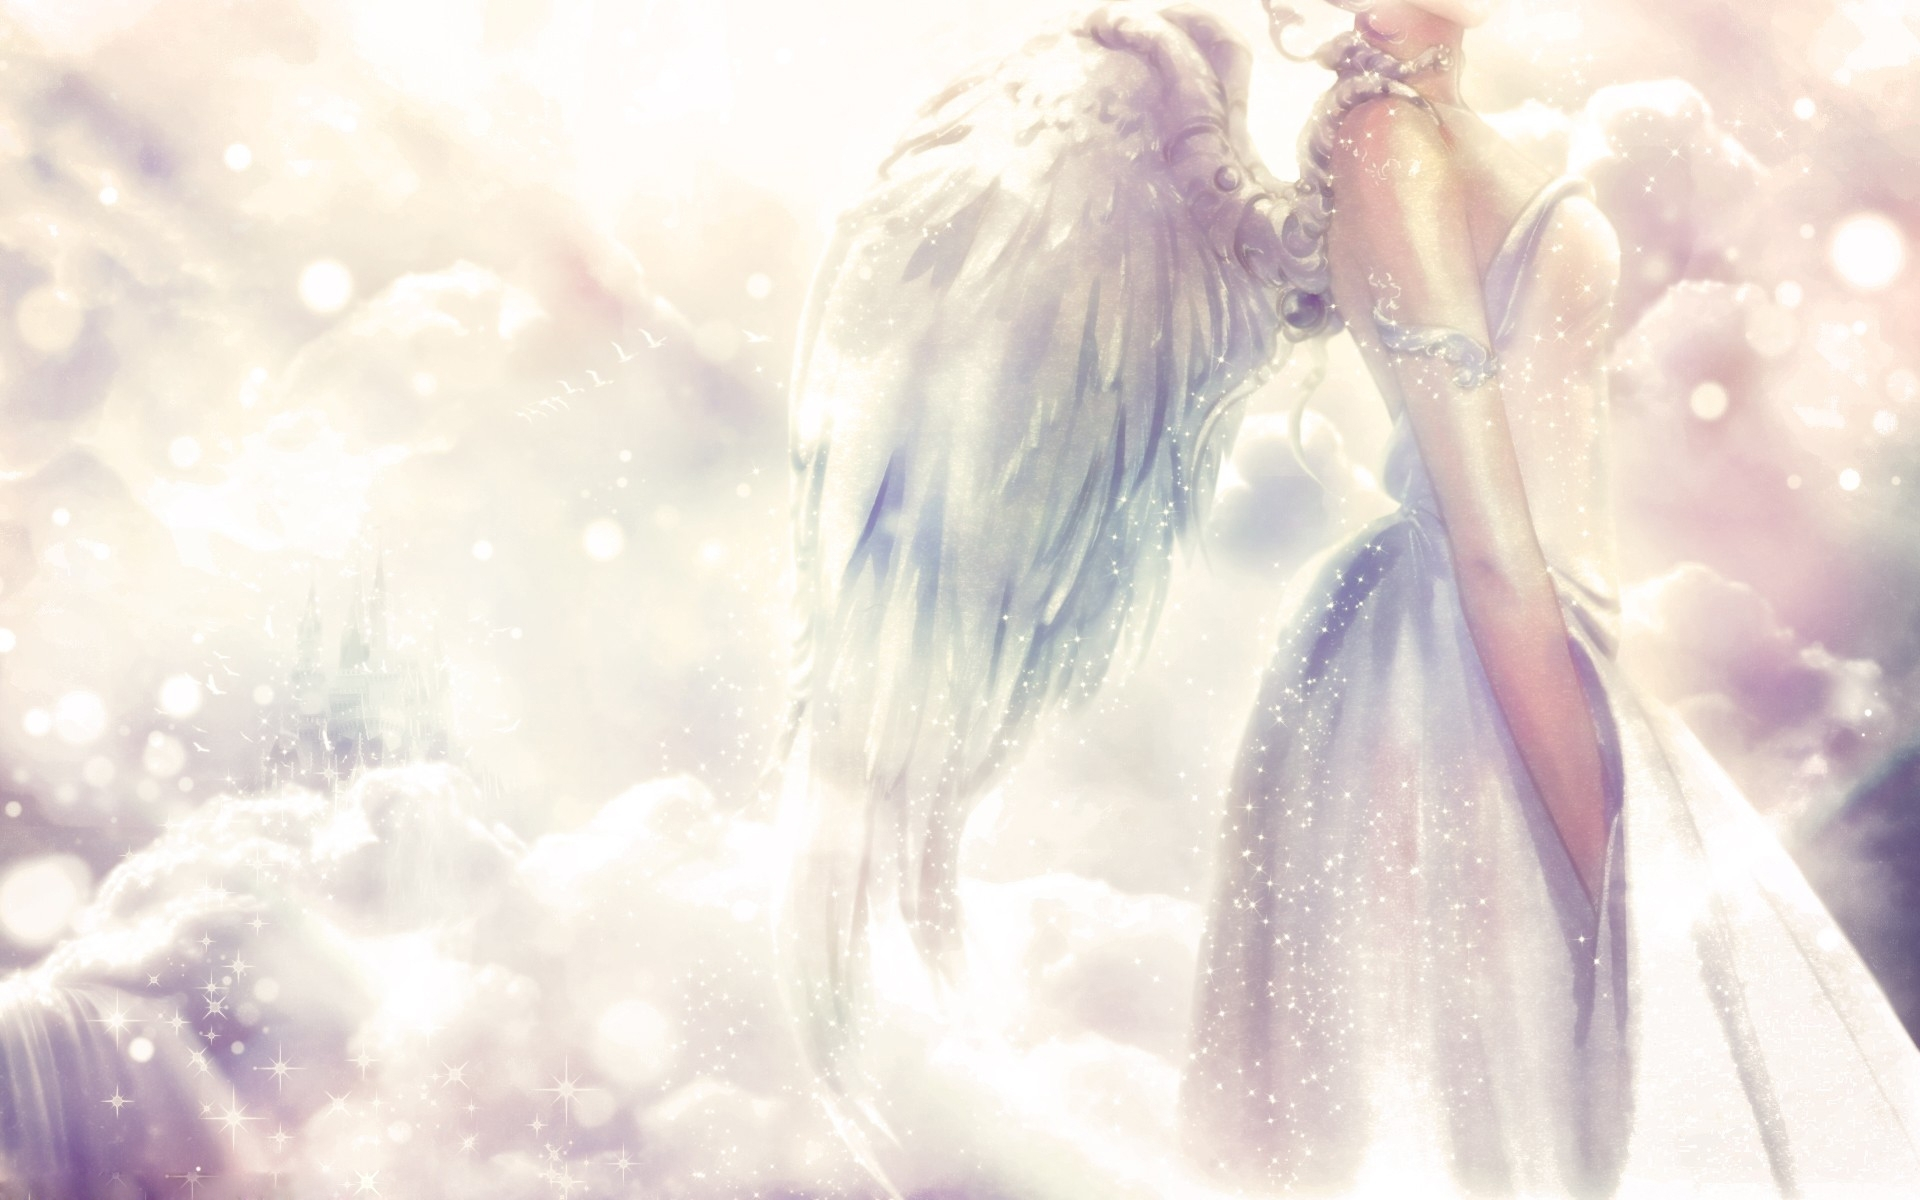 angel-wallpapers-hd-free - wallpaper.wiki